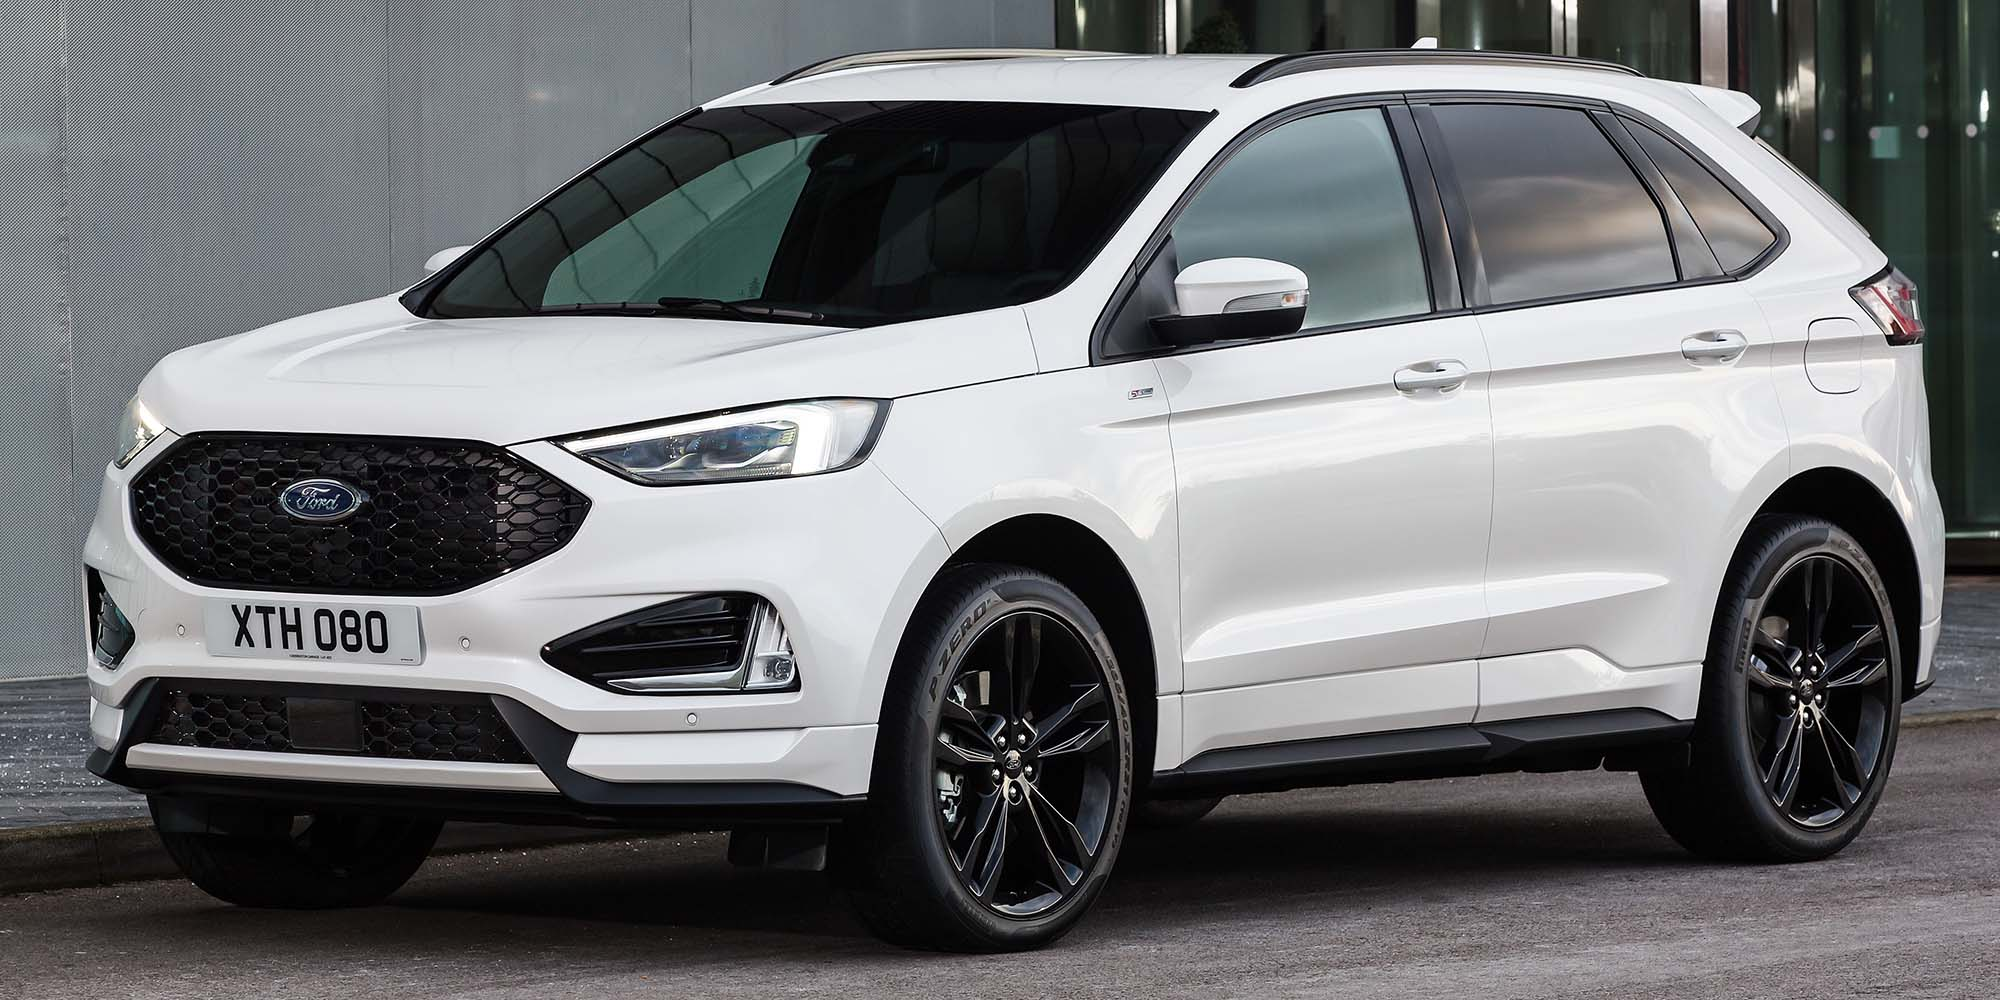 2018 Ford Edge Arrives In Europe With 175kW Bi-turbo